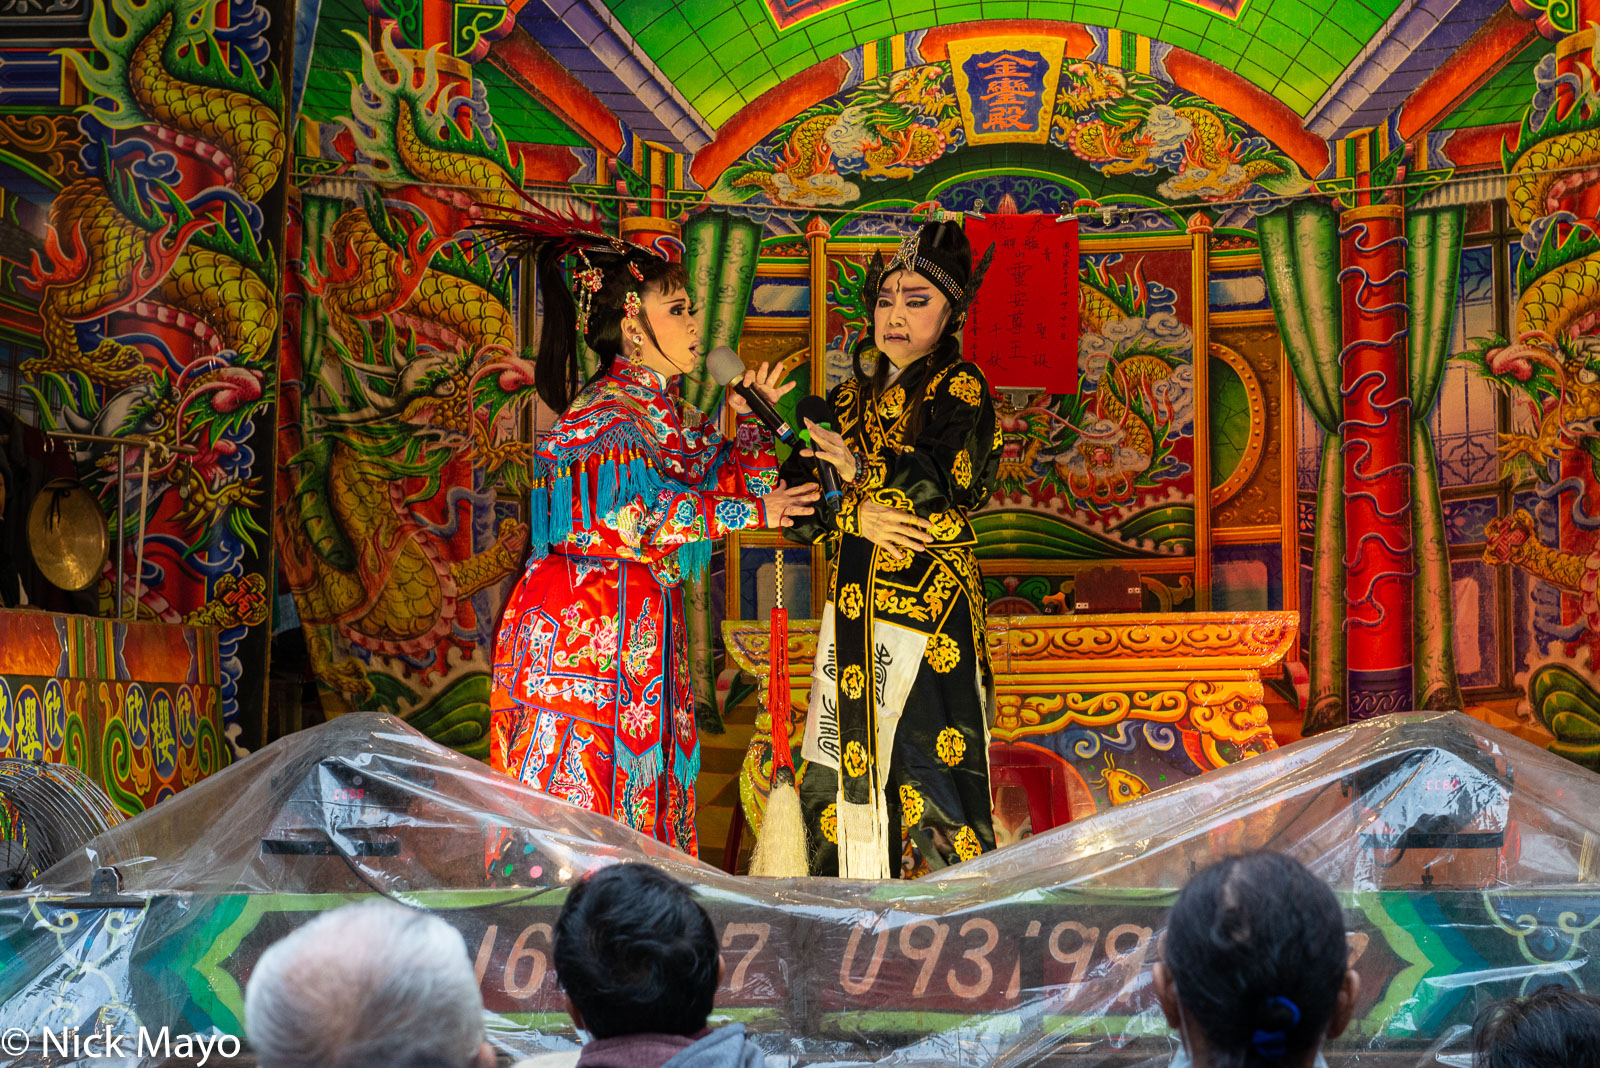 Singers in a local ke-tse opera performance during the Qingshan Temple Festival in the Wanhua district of Taipei.